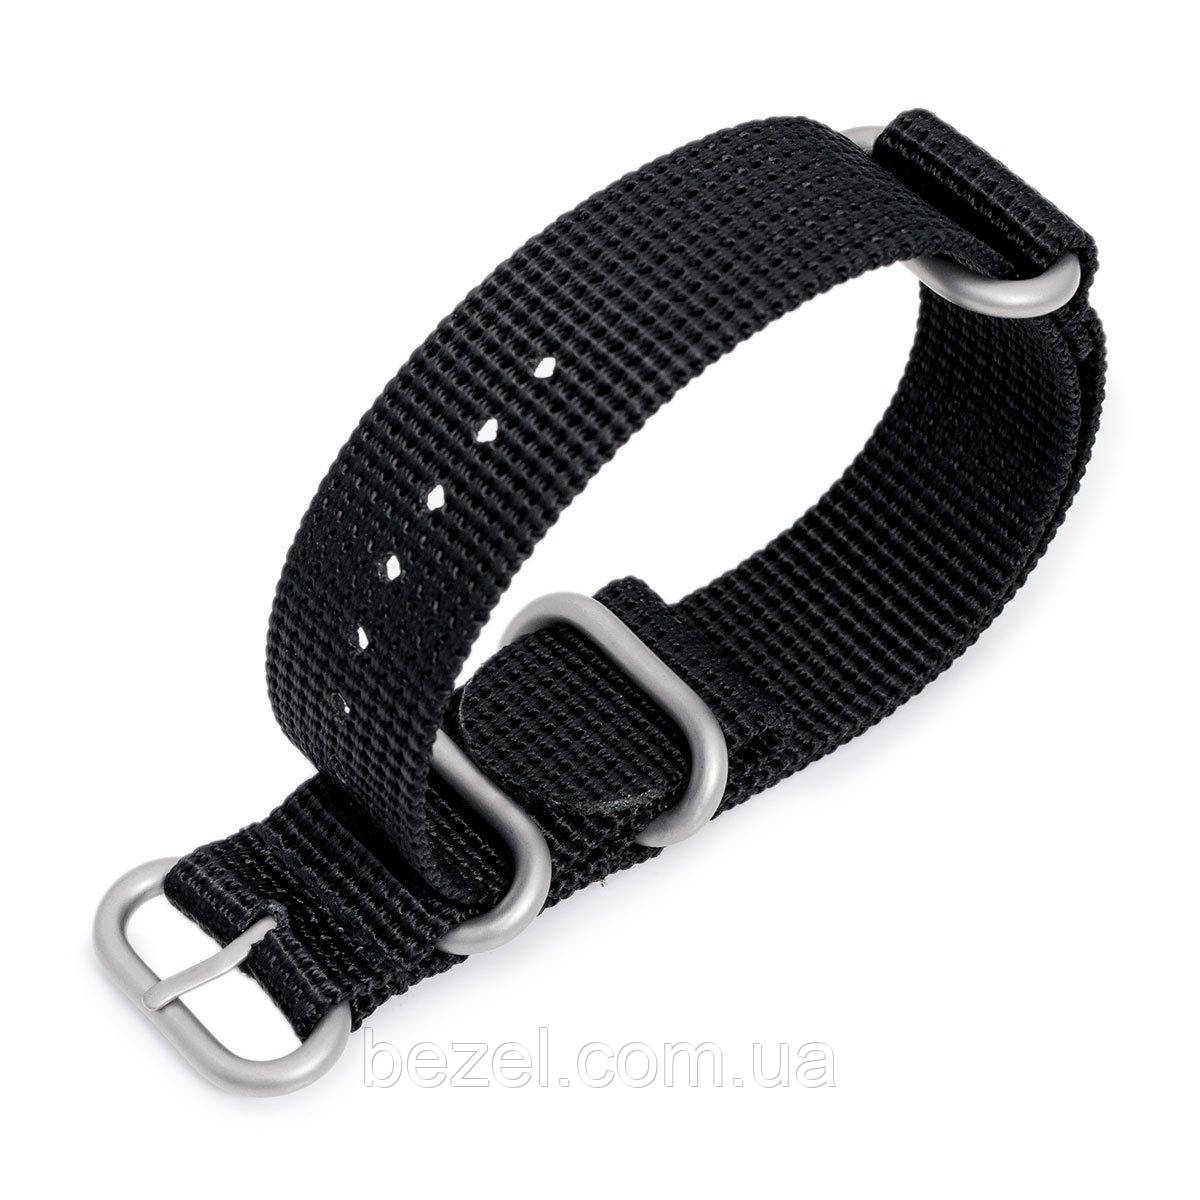 MiLTAT 18mm, 20mm, 22mm, 24mm and 26mm 3 Rings Zulu military watch strap 3D woven nylon armband - Black, Brushed Hardware